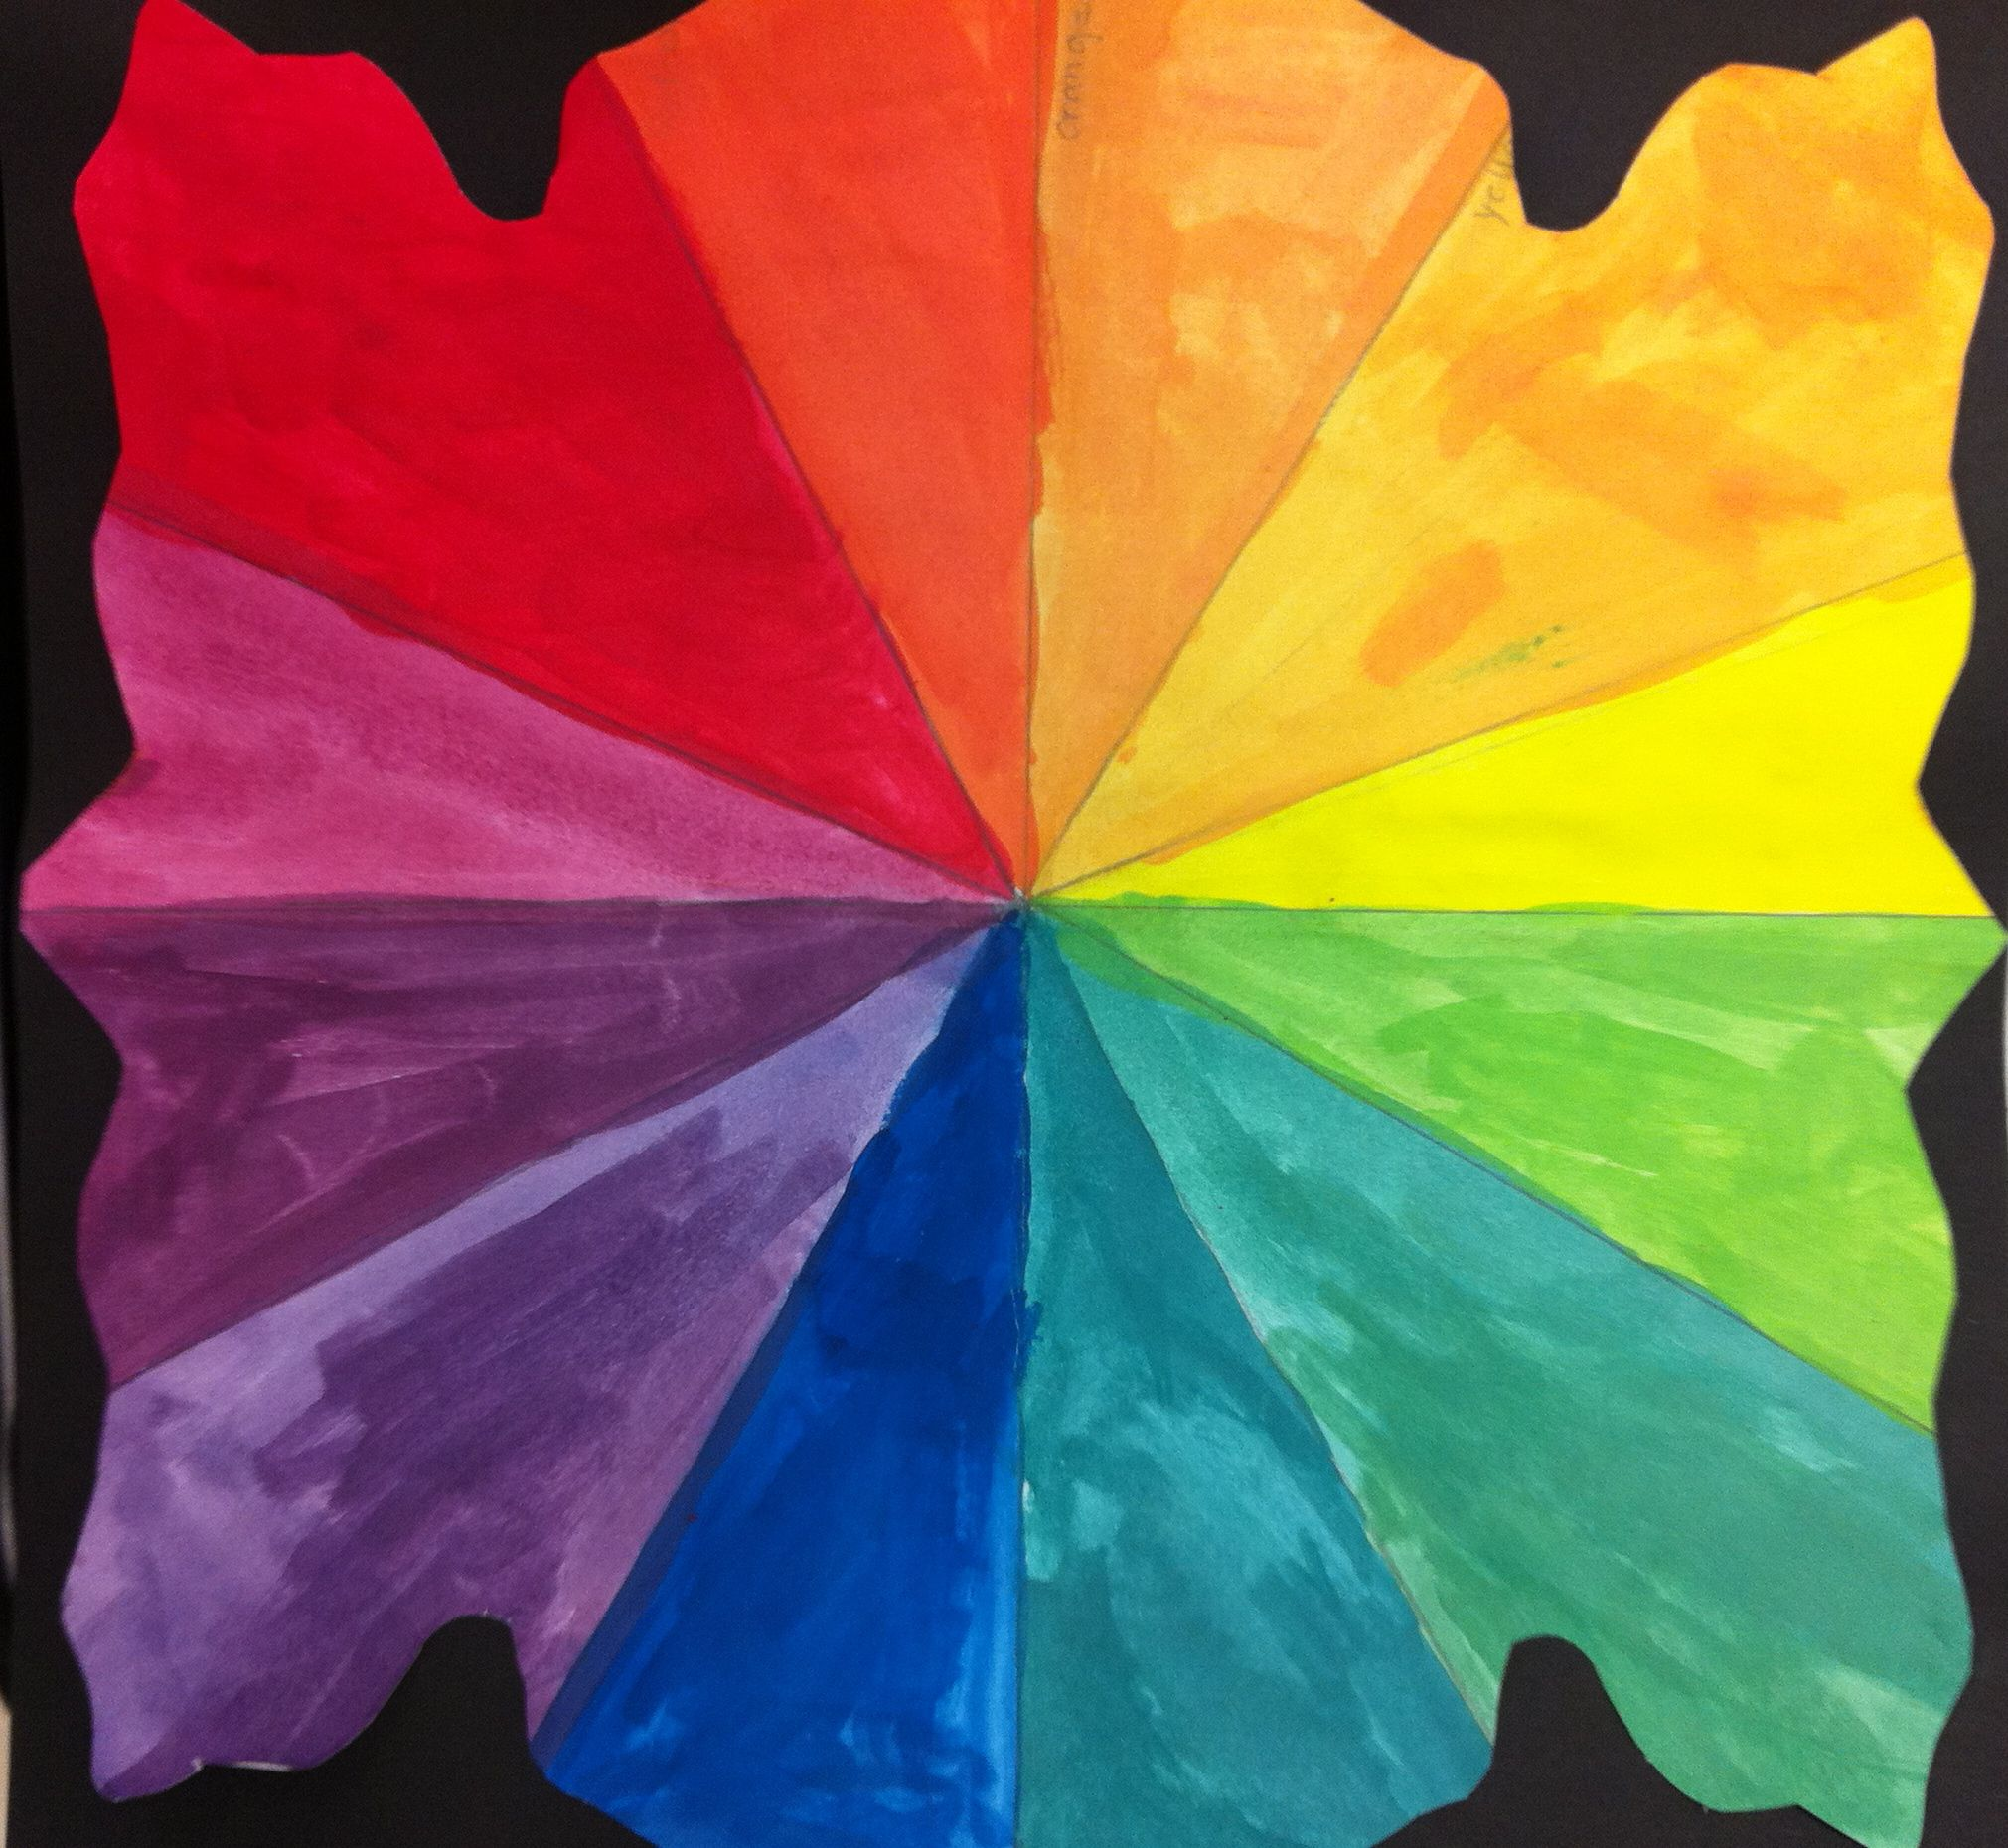 12 Hue Color Wheel Free Lesson Plan Download